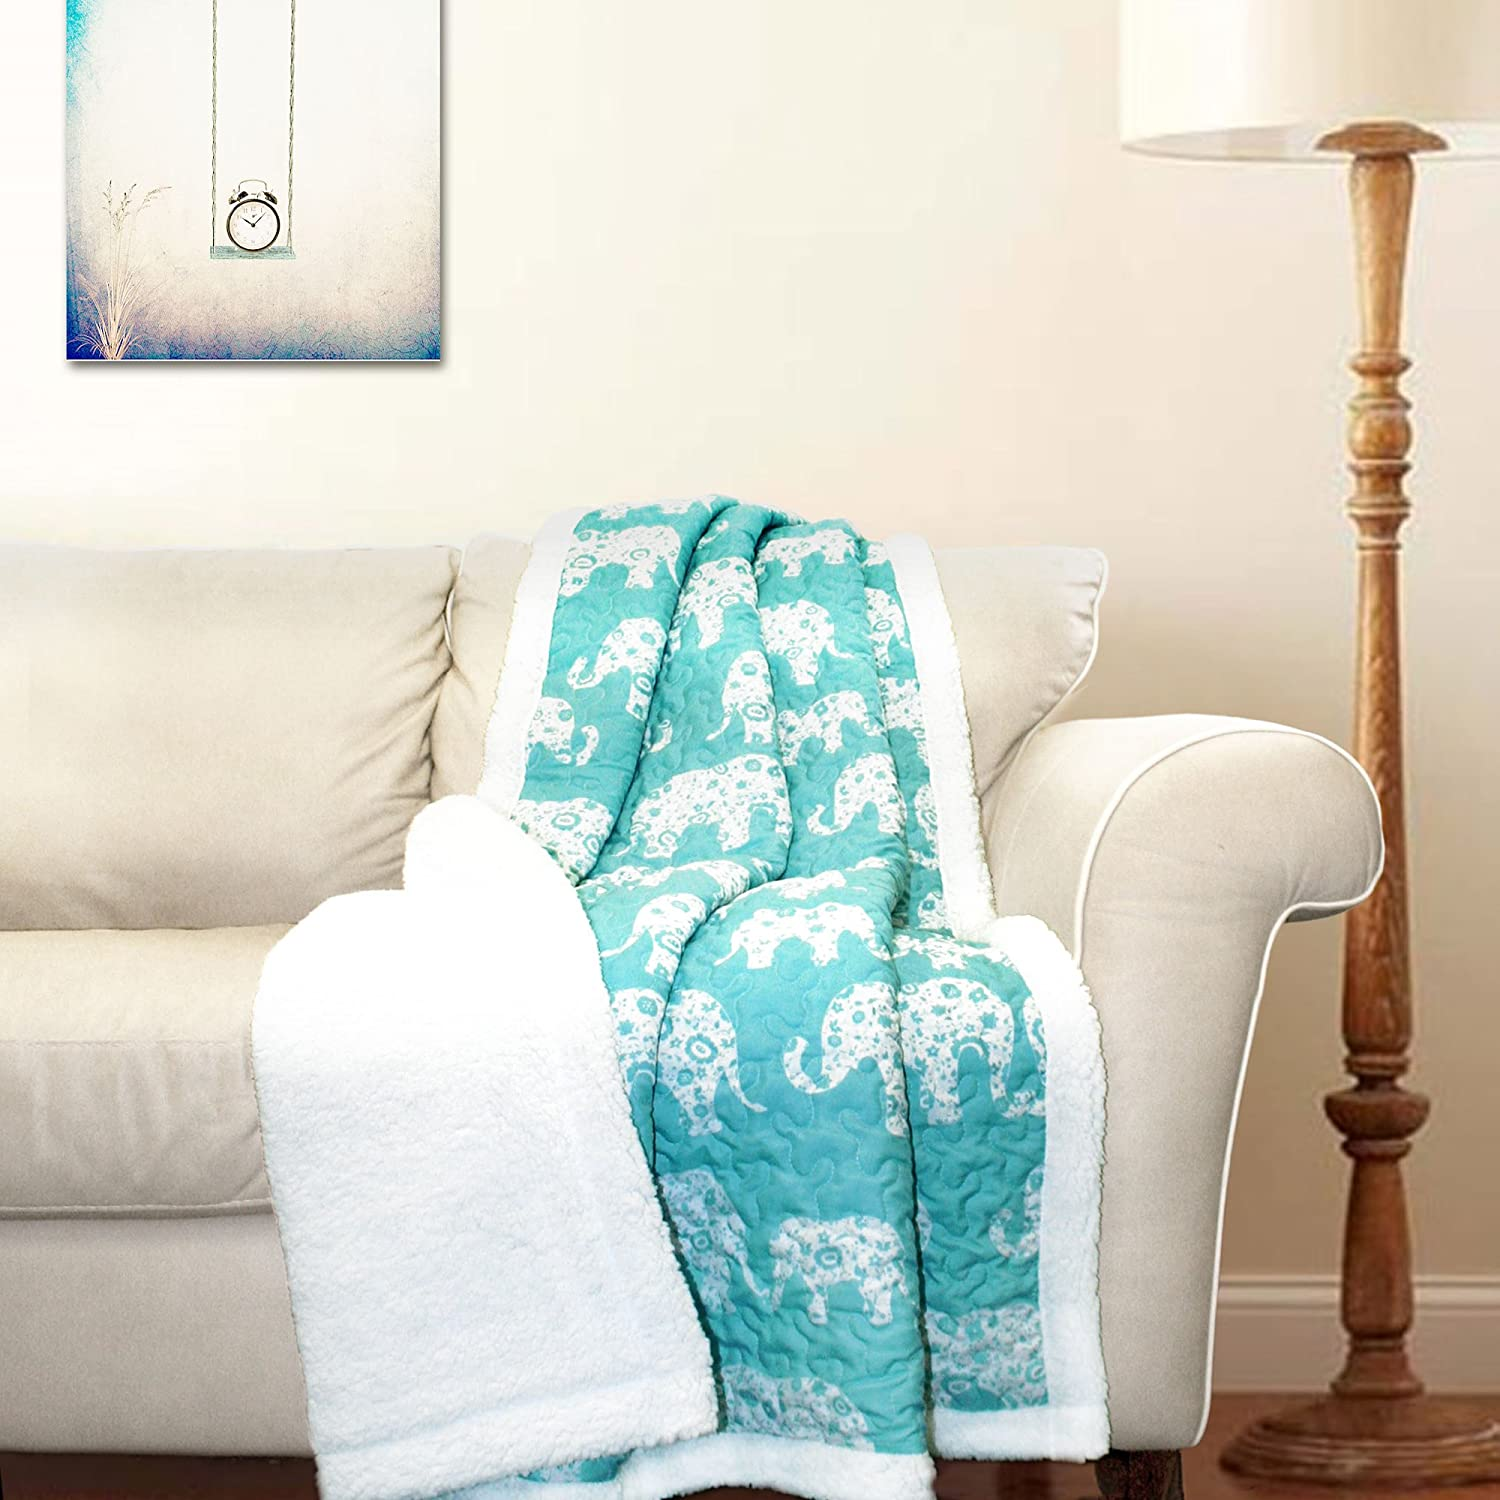 "Lush Decor Elephant Parade Fuzzy Reversible Sherpa Throw Blanket, 60"" x 50"", White and Aqua"